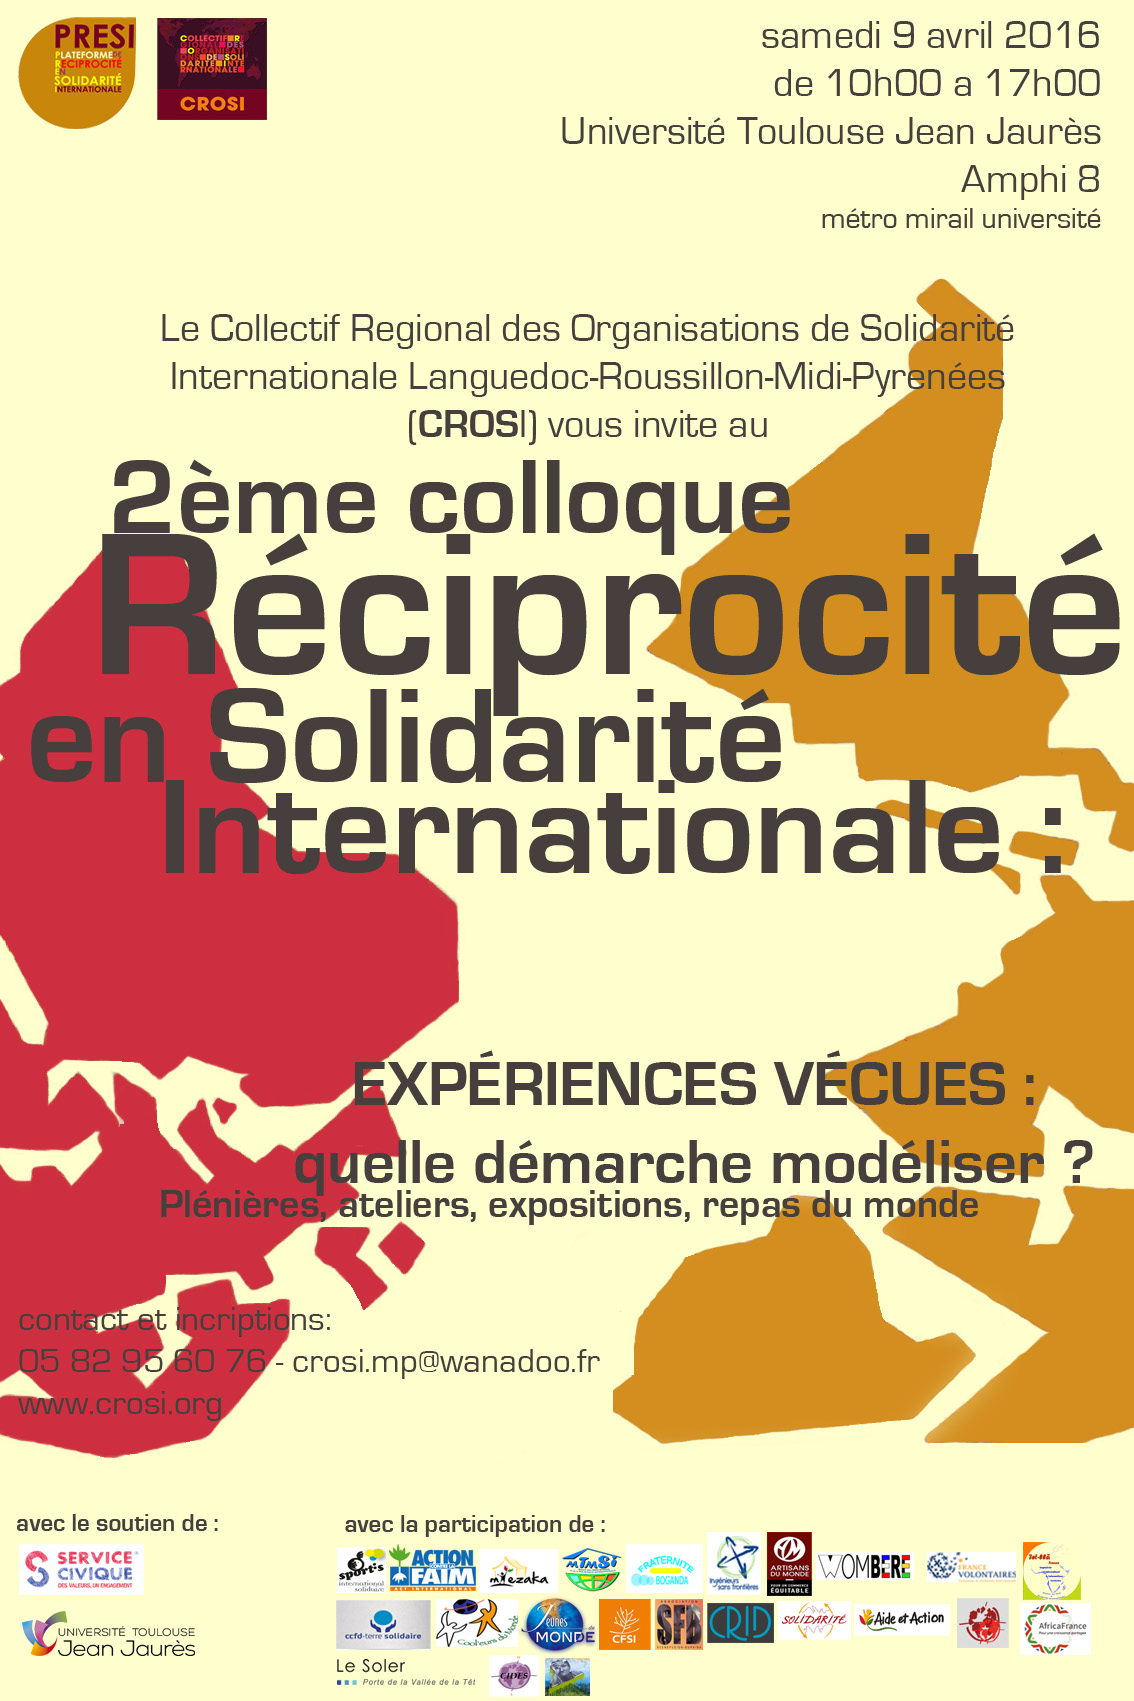 CROSI colloque2016 affiche